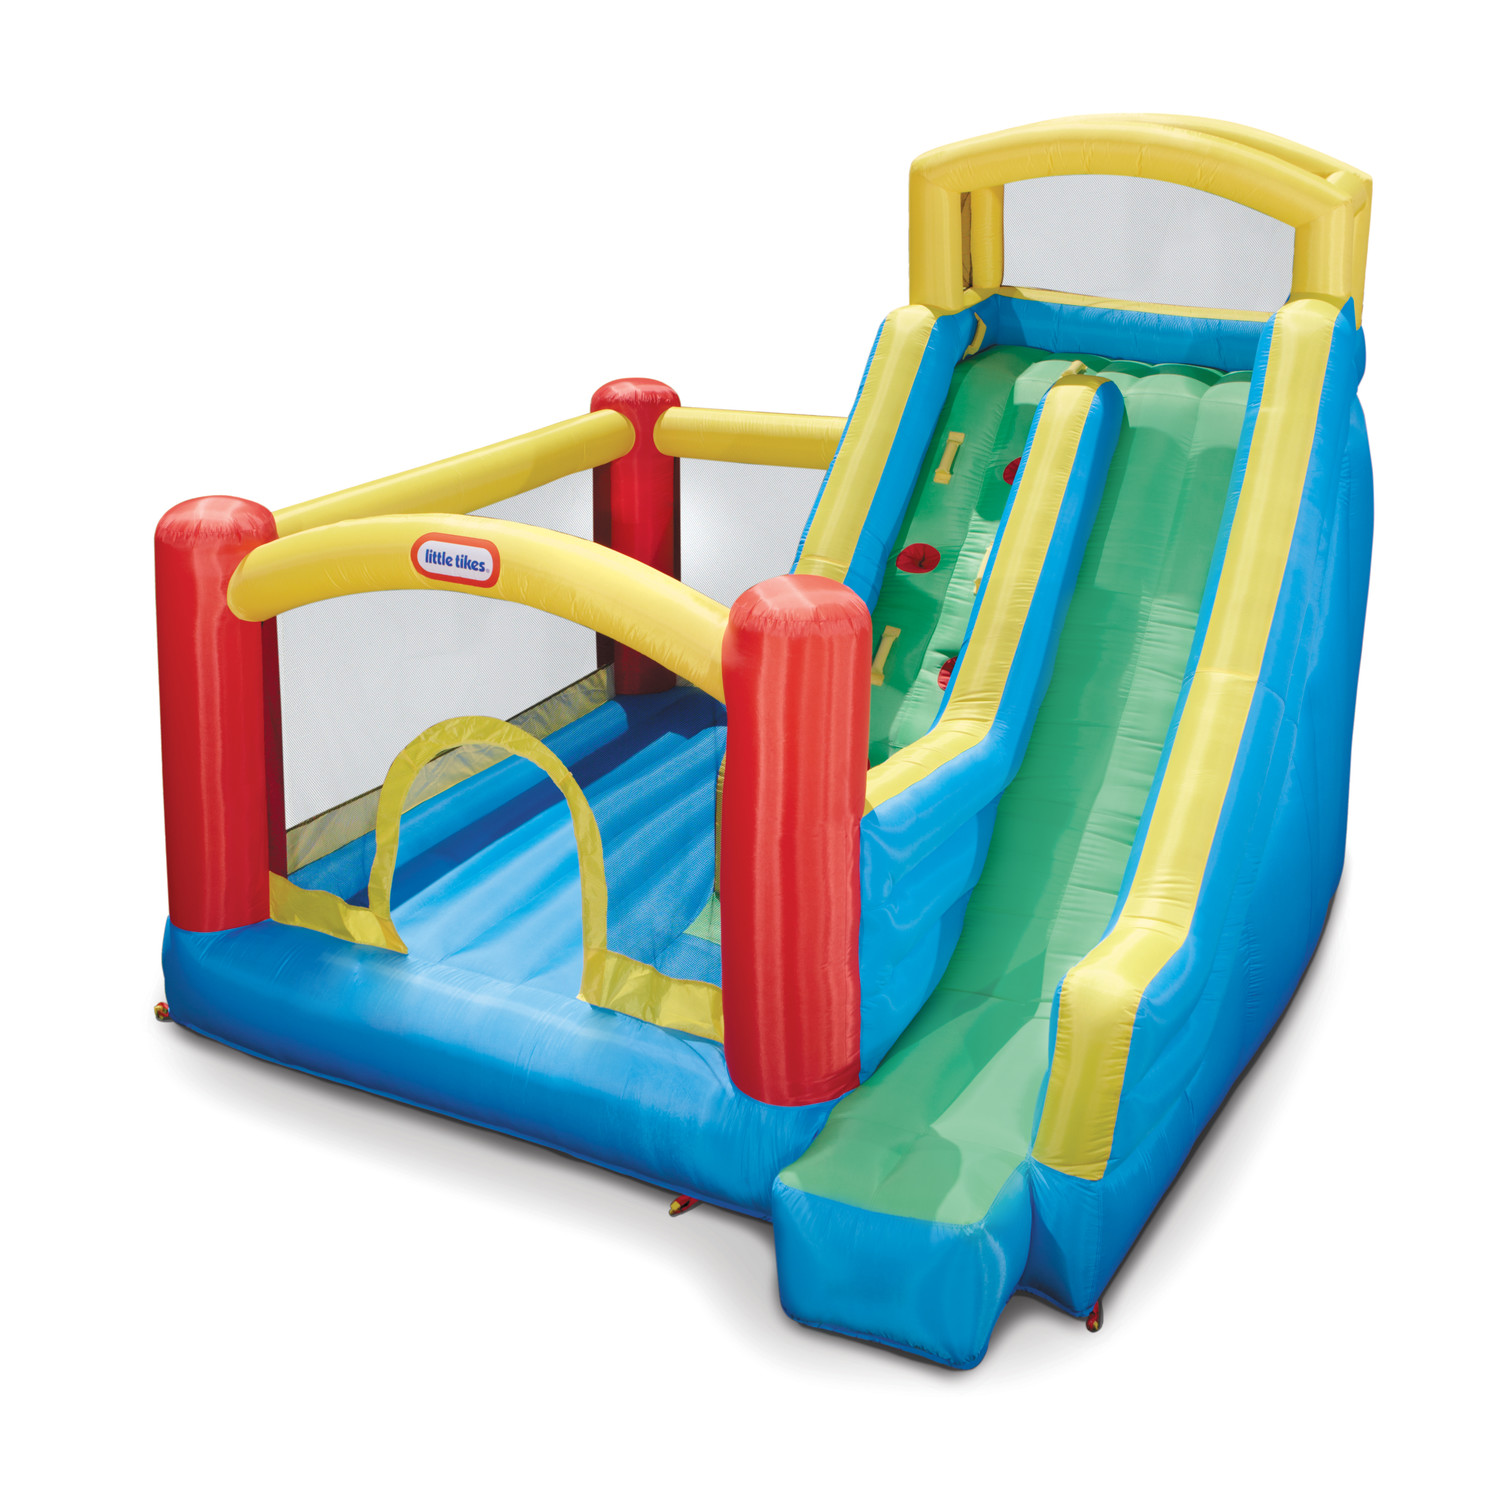 Charming Little Tikes Bounce House Made Of Caoutchouc With Giant Slide For Play Yard Ideas